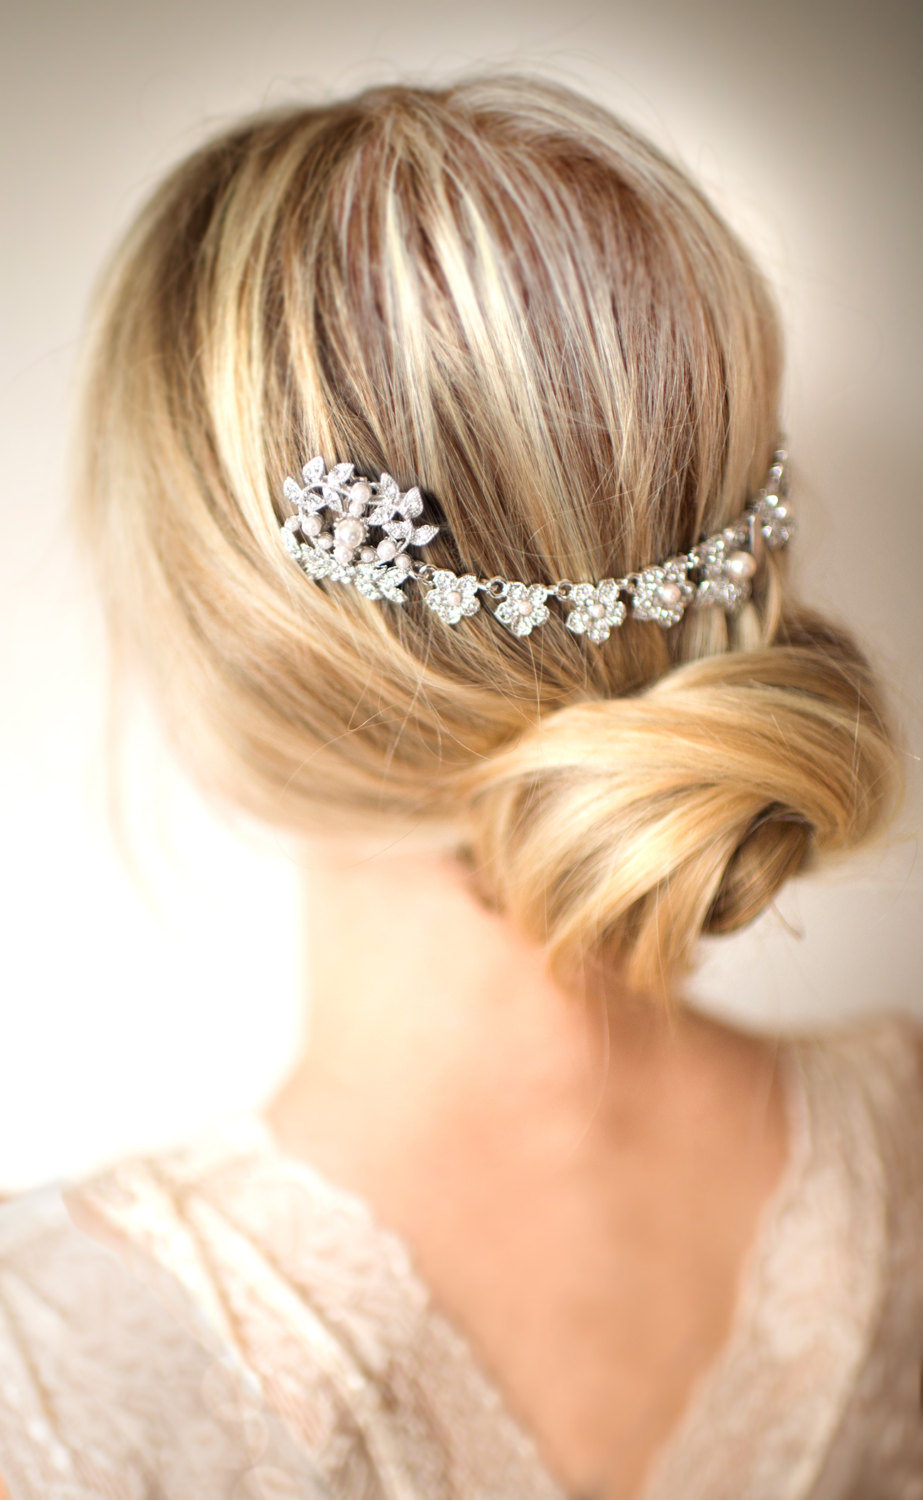 bridal hair chain | via https://emmalinebride.com/bride/bridal-hair-chain/